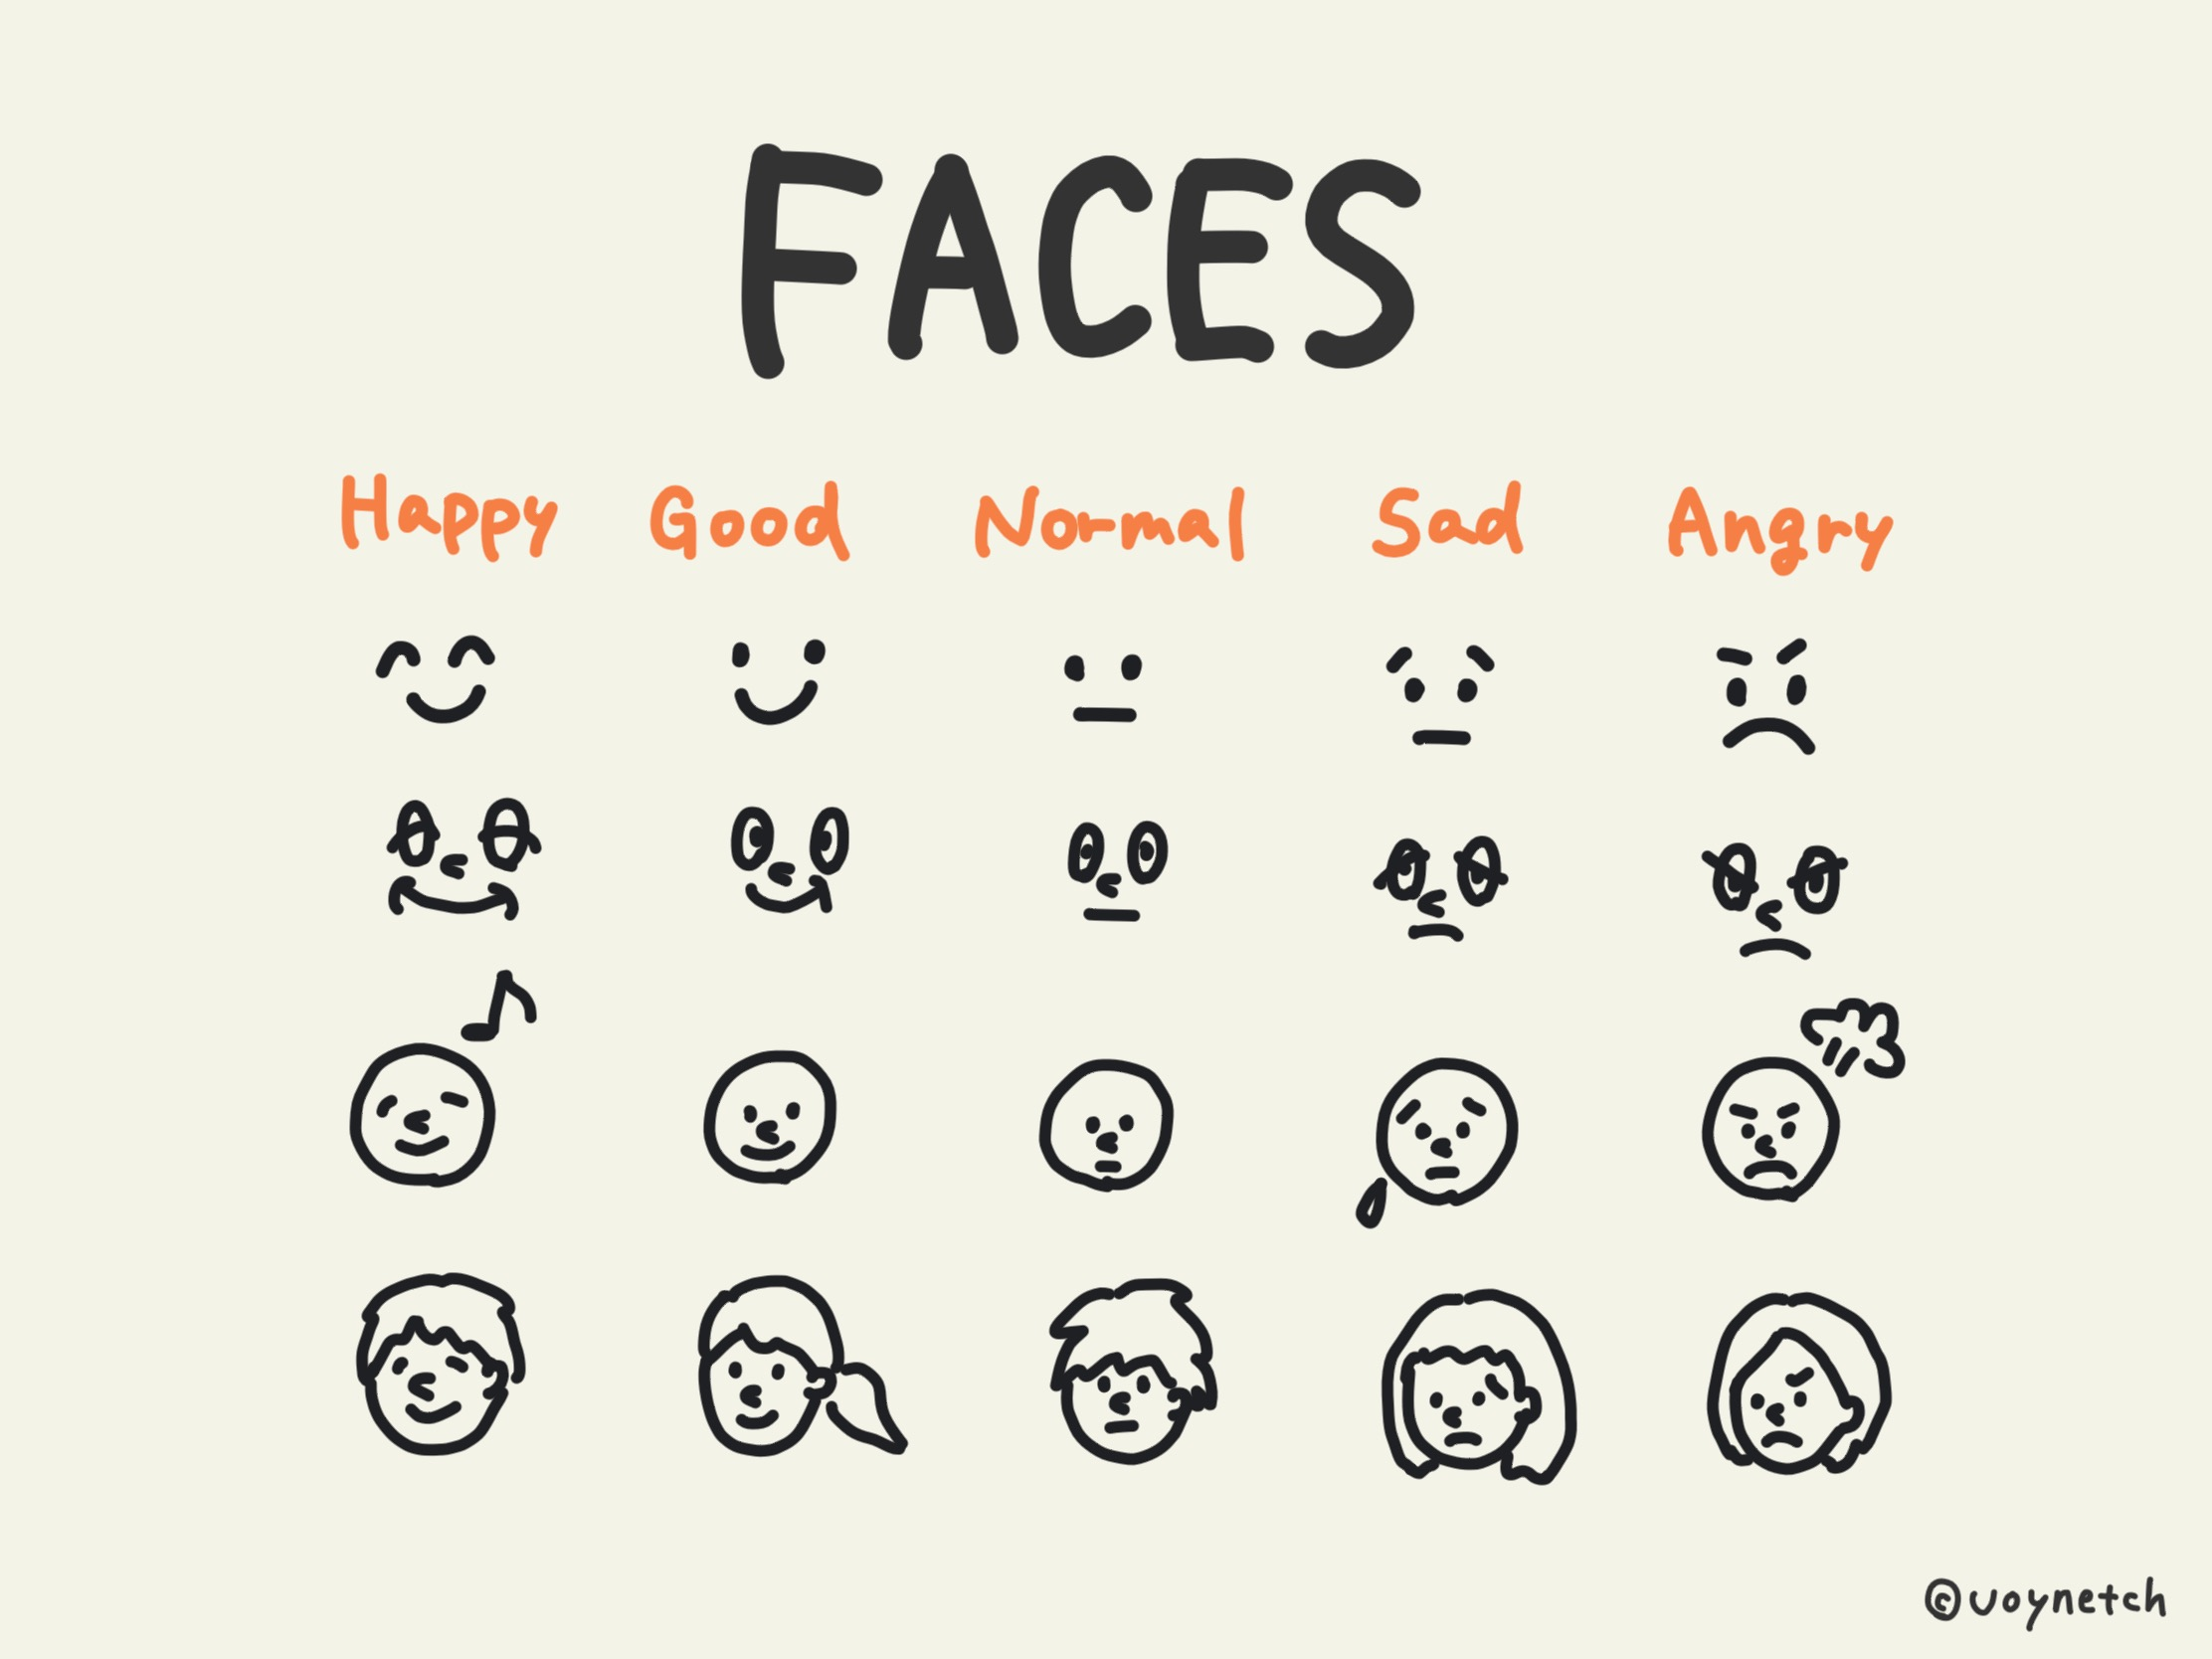 FACES Image